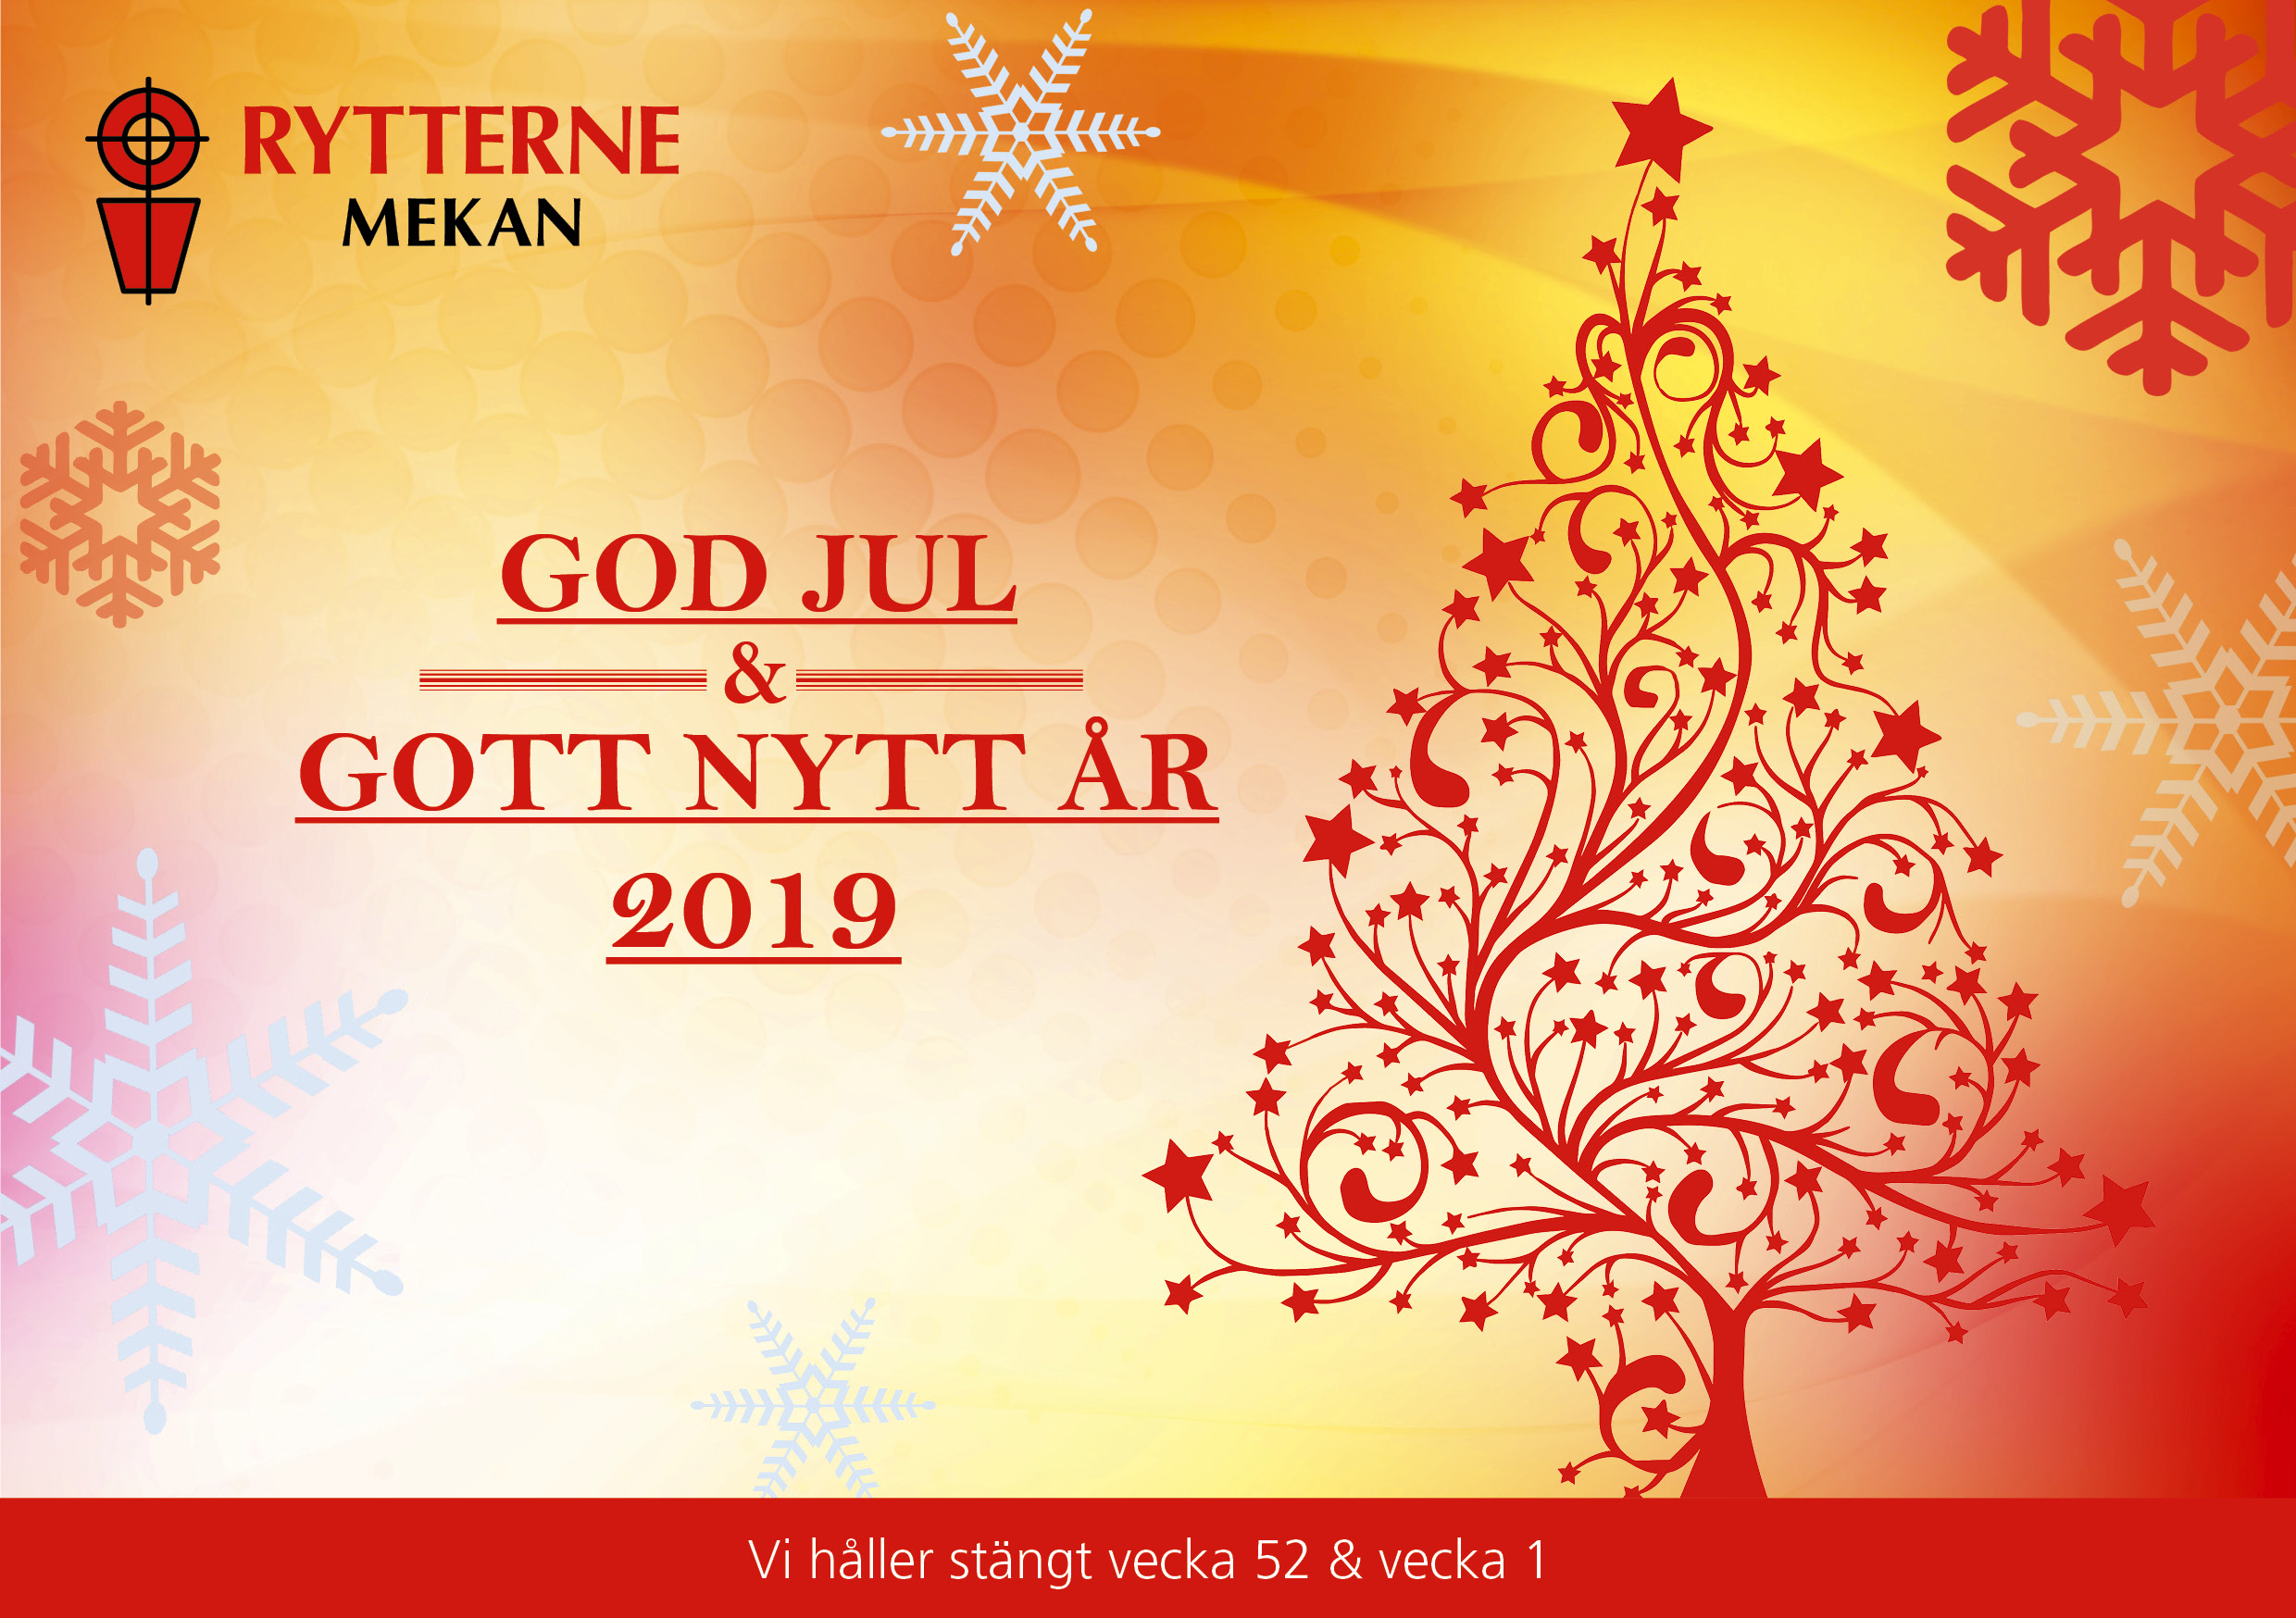 Rytterne mekan god jul